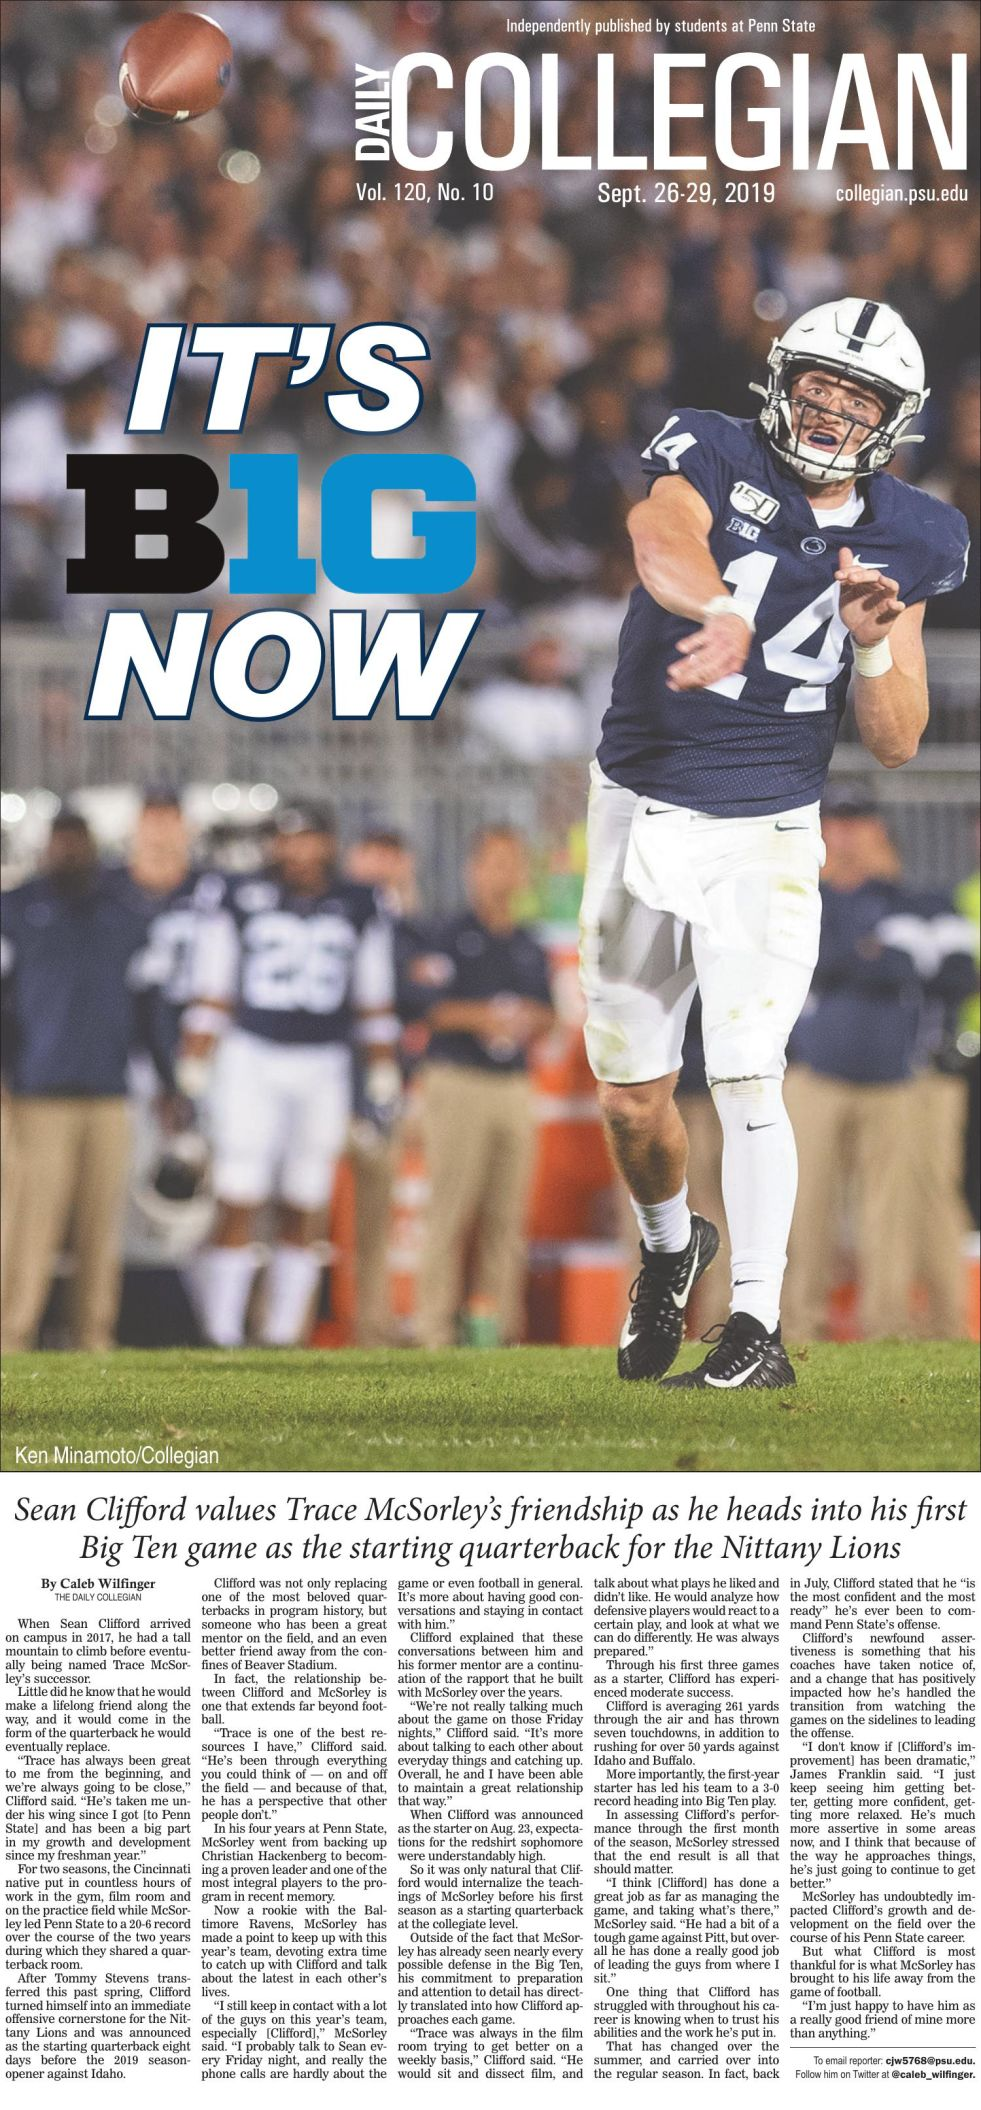 The Daily Collegian for Sept. 26, 2019